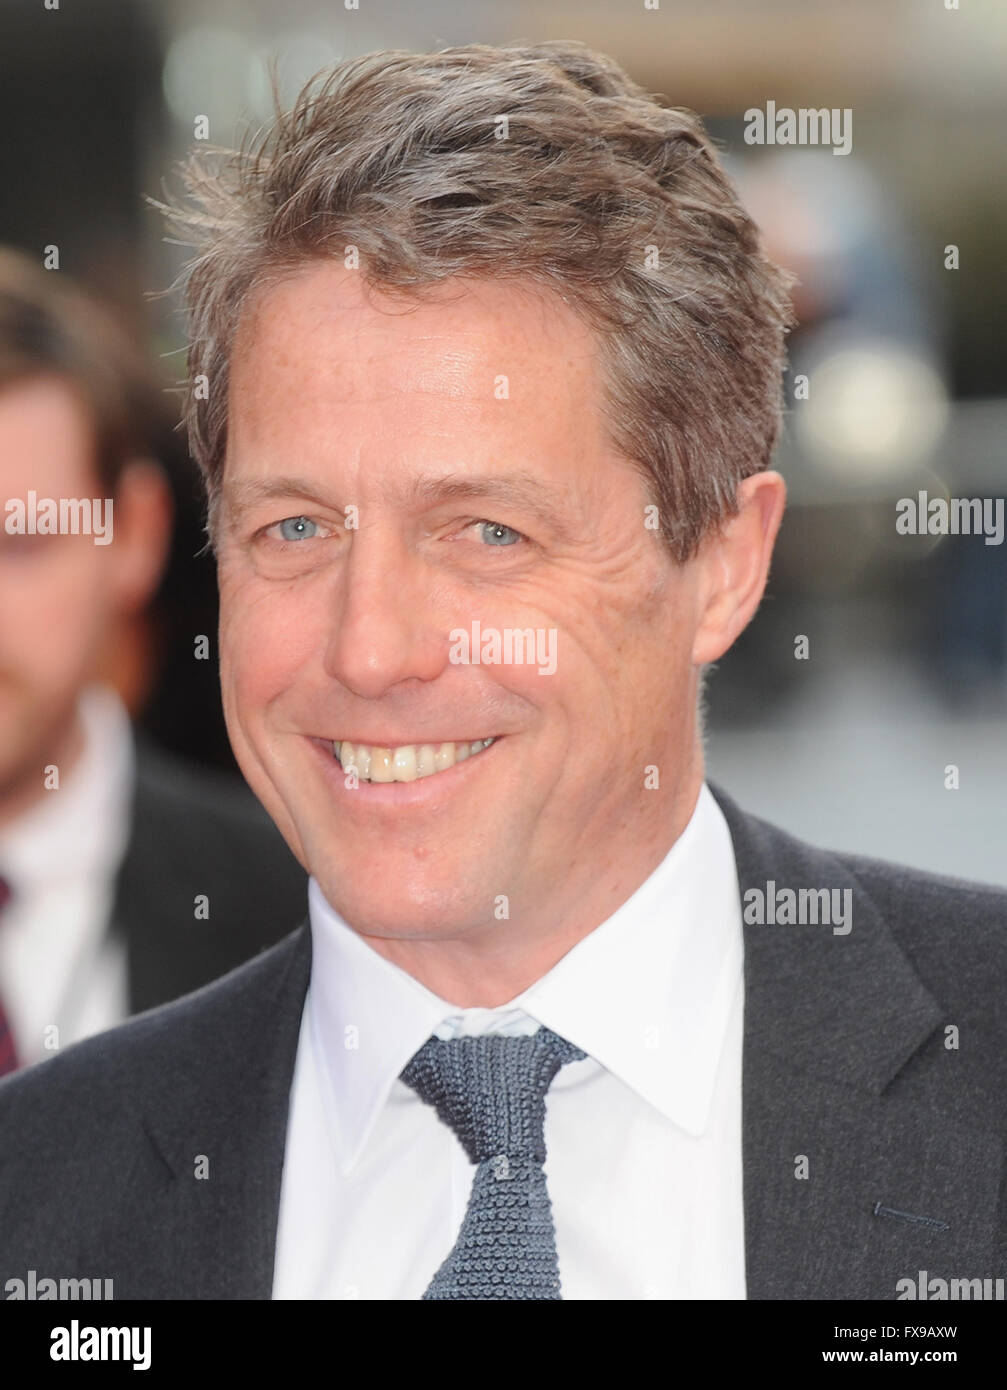 London, UK. 12th April, 2016. Hugh Grant attends the European Premiere of 'Florence Foster Jenkins' at Odeon - Stock Image